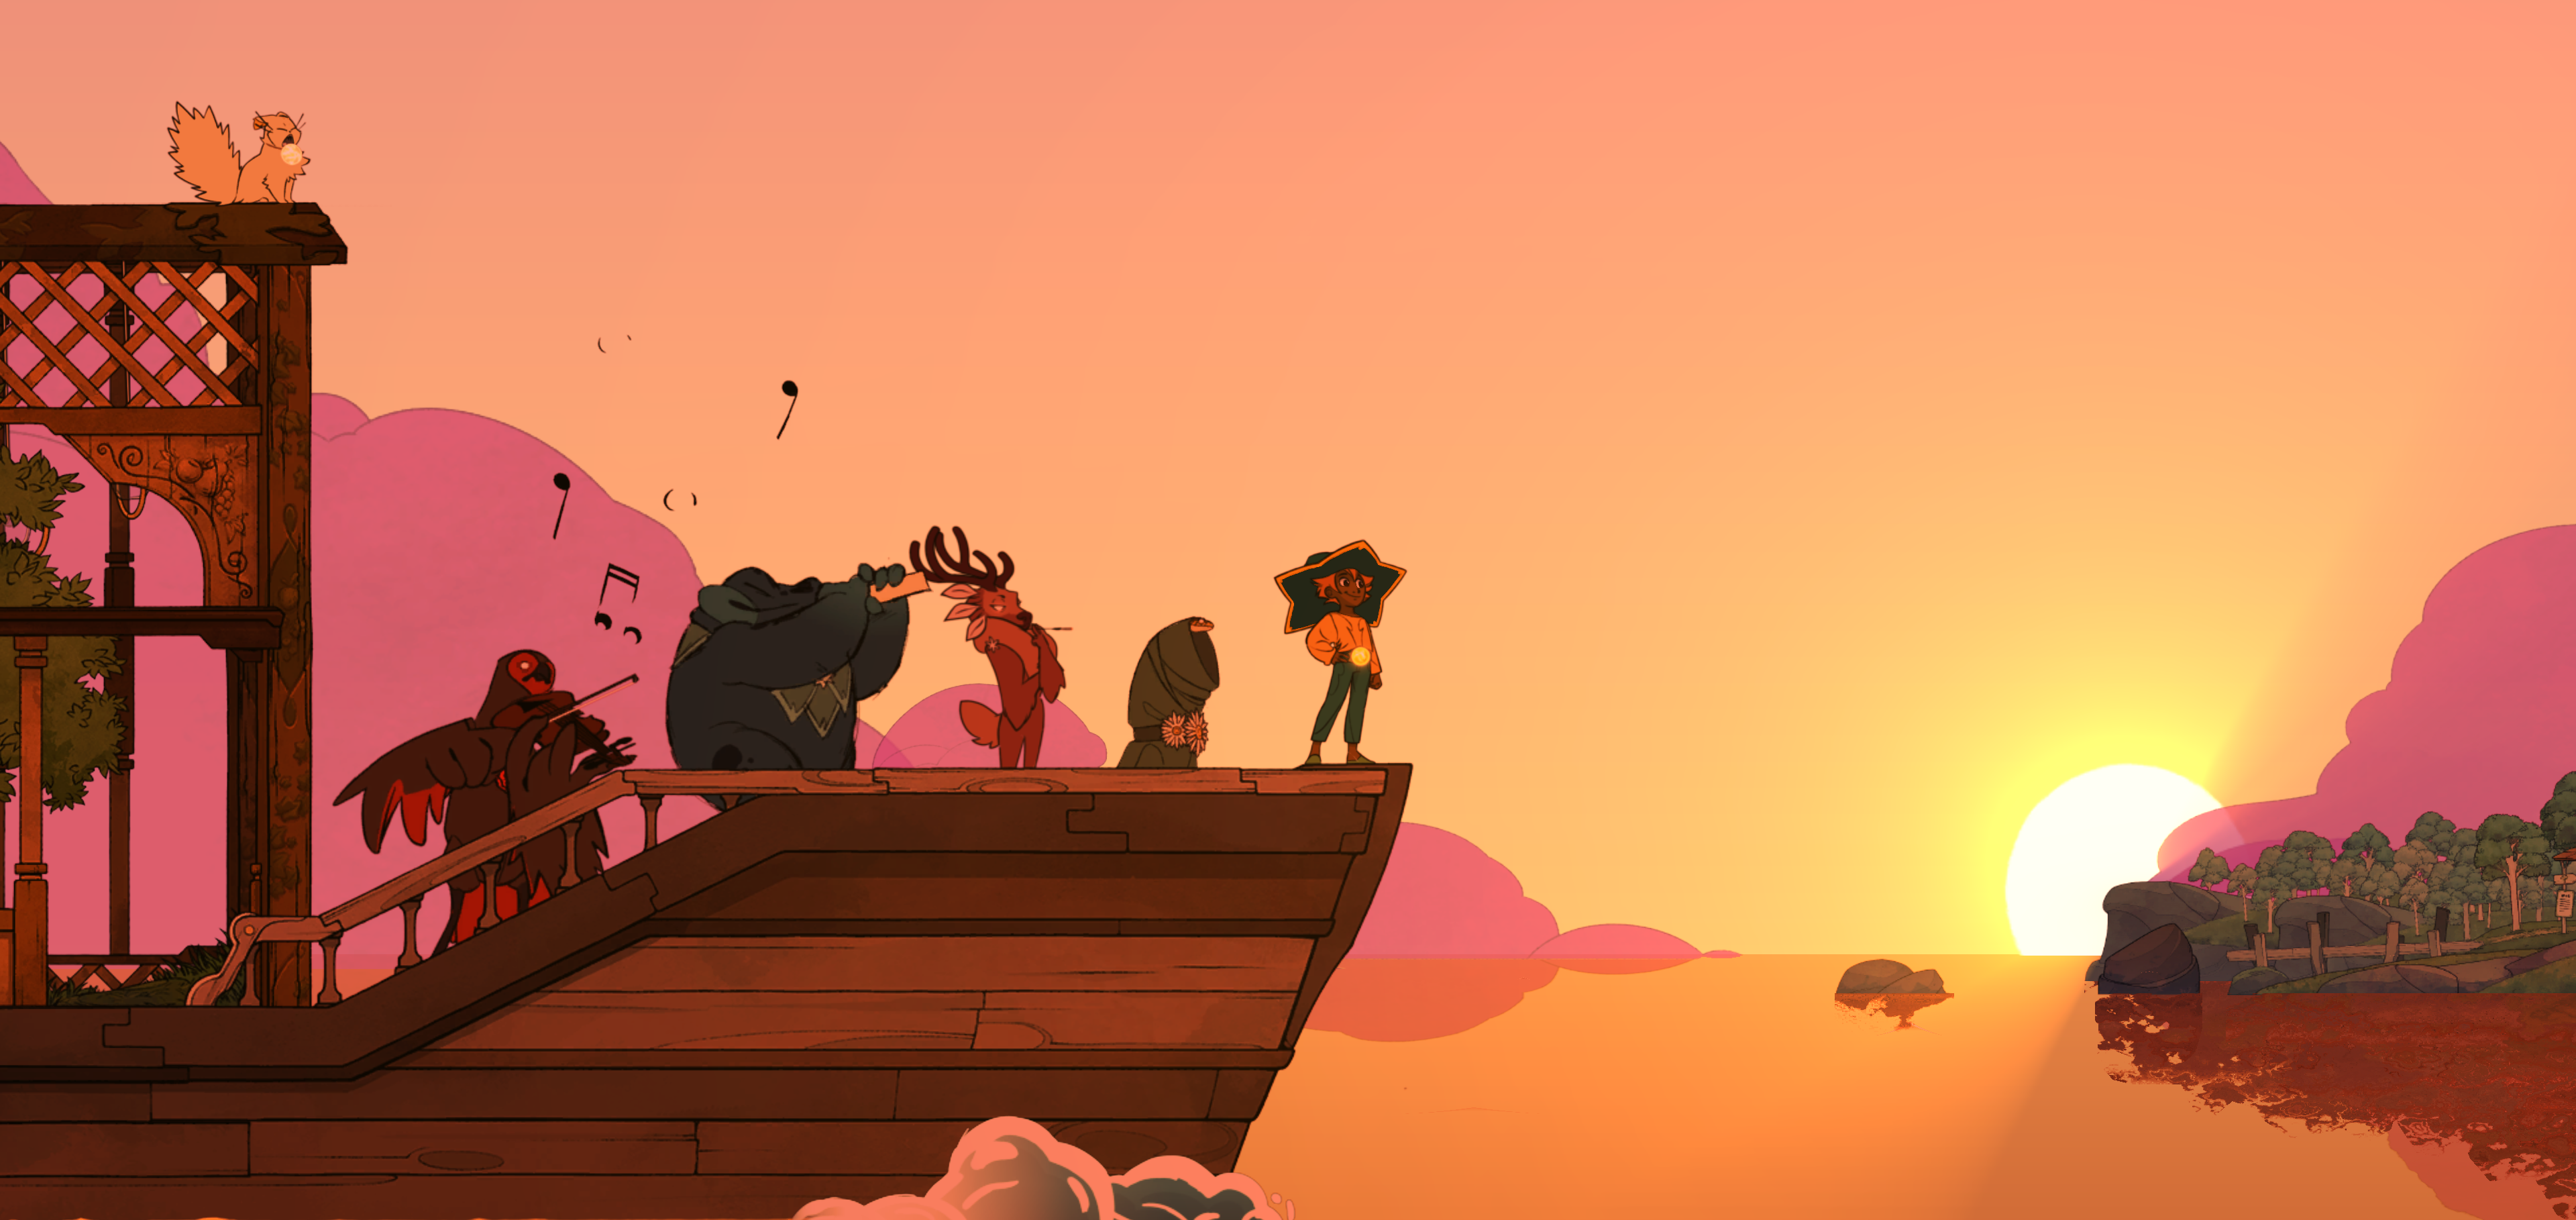 Stella on the boat at sunset with her crew who are playing musical instruments in a screenshot from Spiritfarer (2020)